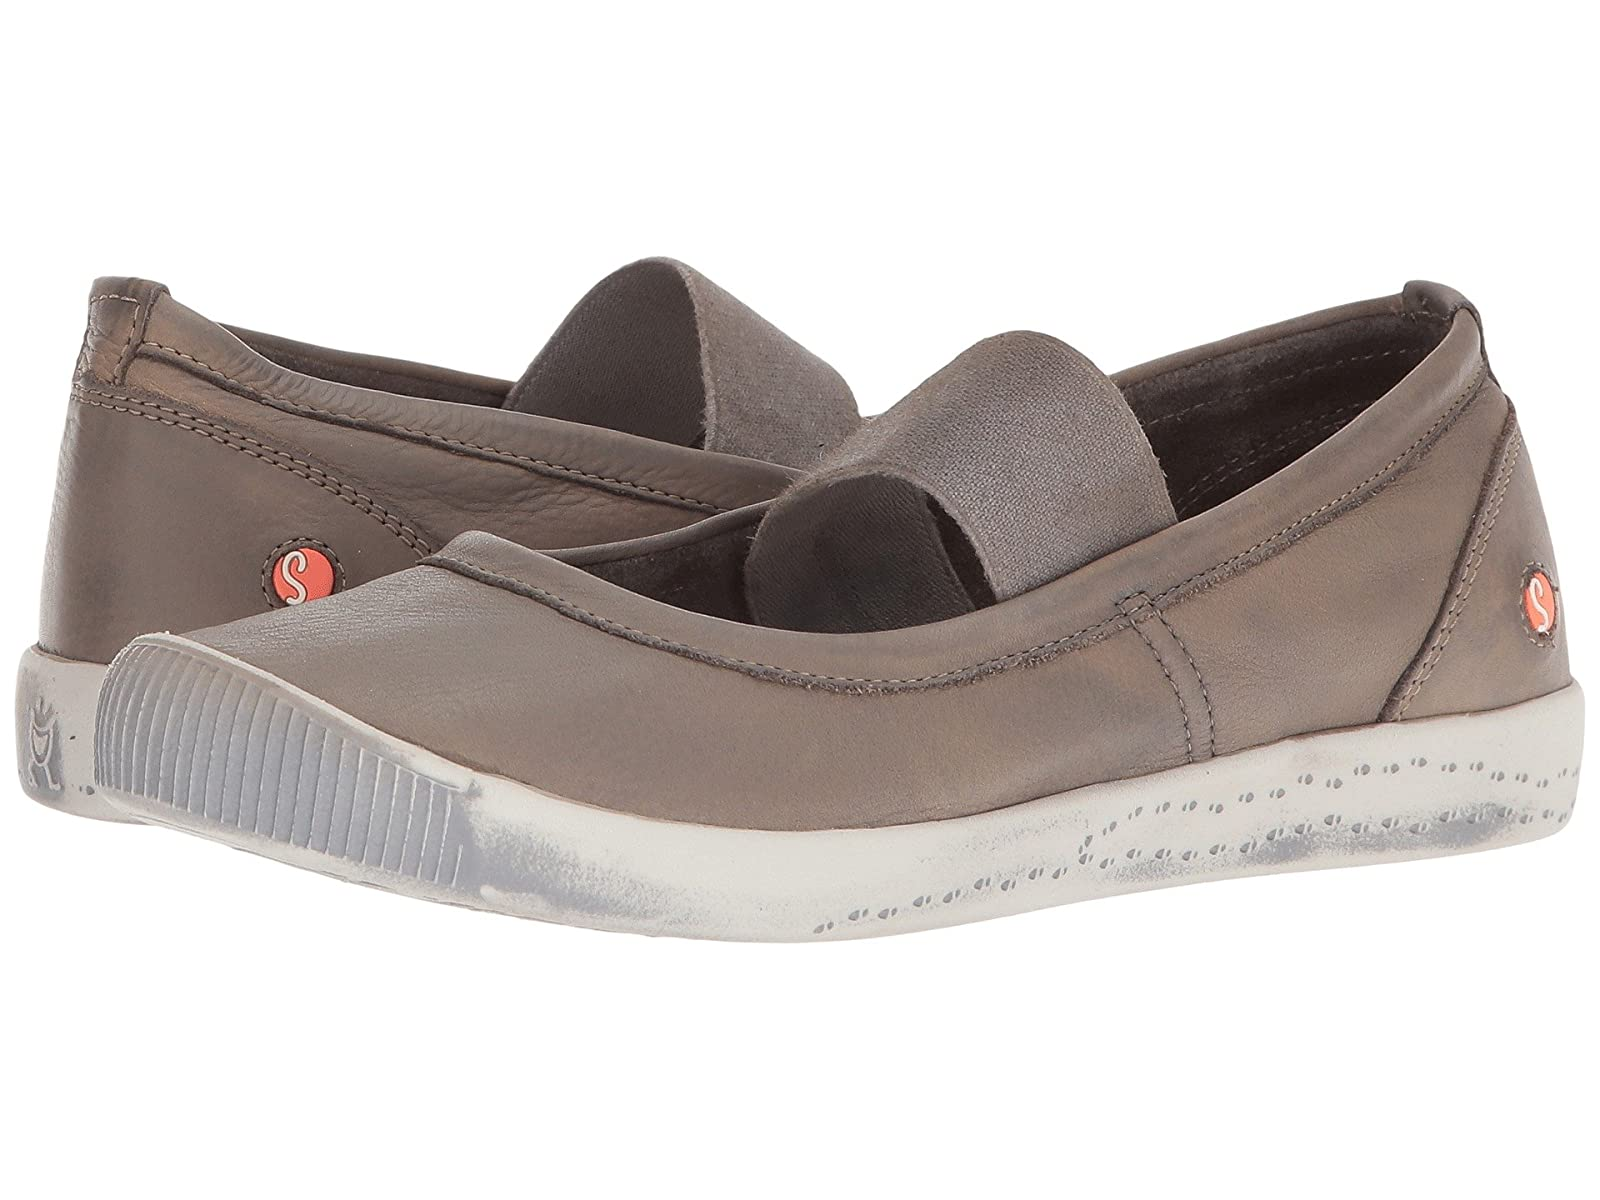 FLY LONDON ION446SOFAtmospheric grades have affordable shoes